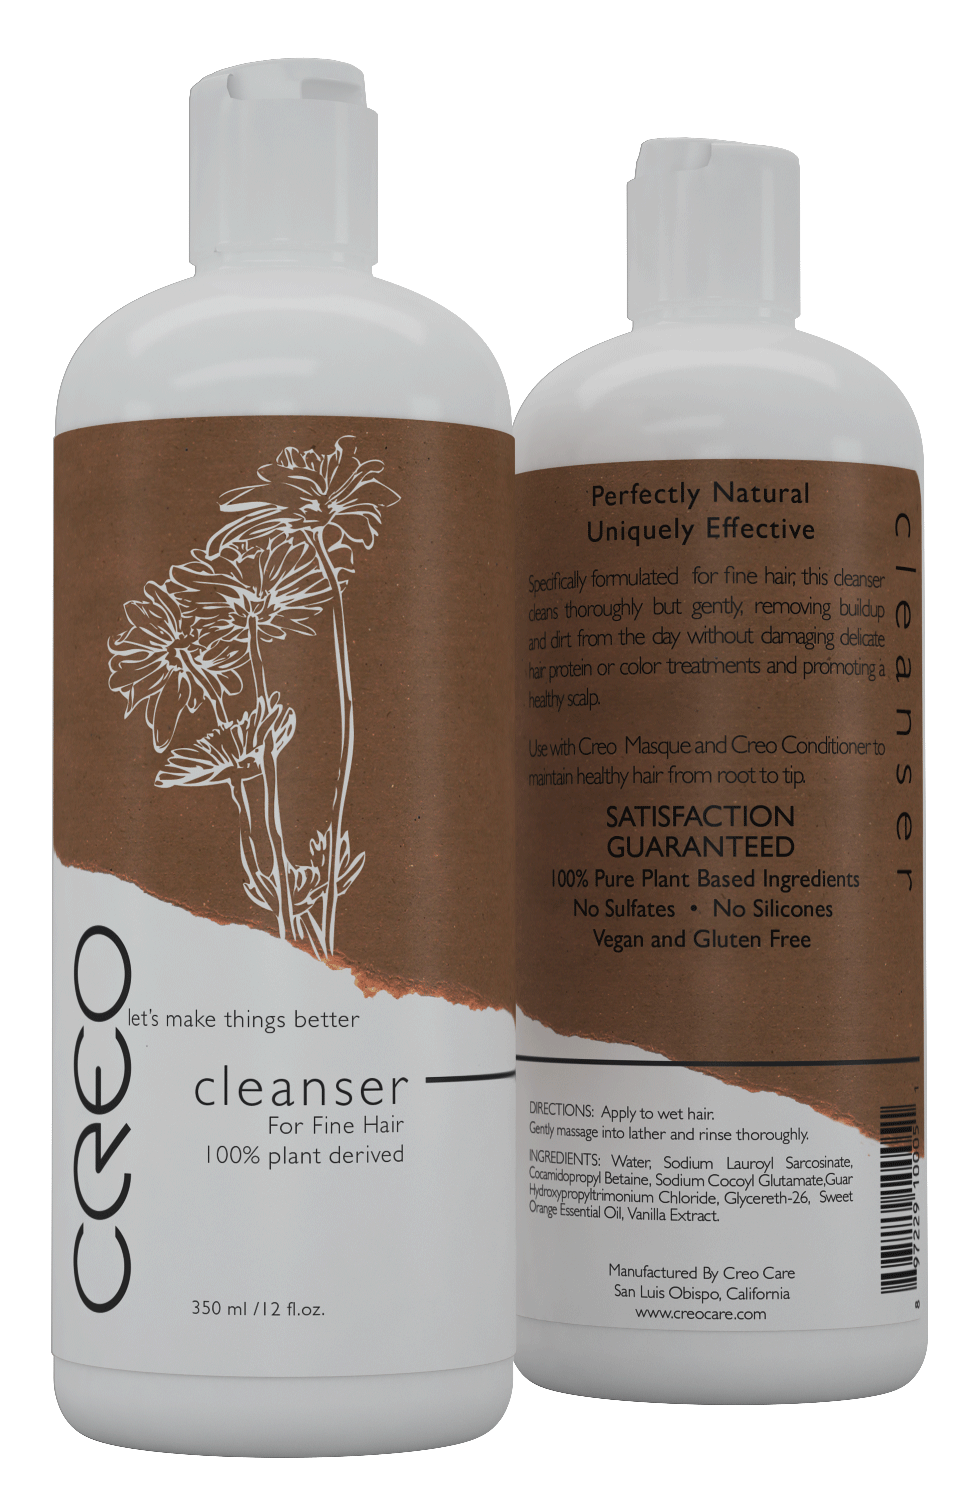 CREO Professional Cleanser for Fine Hair